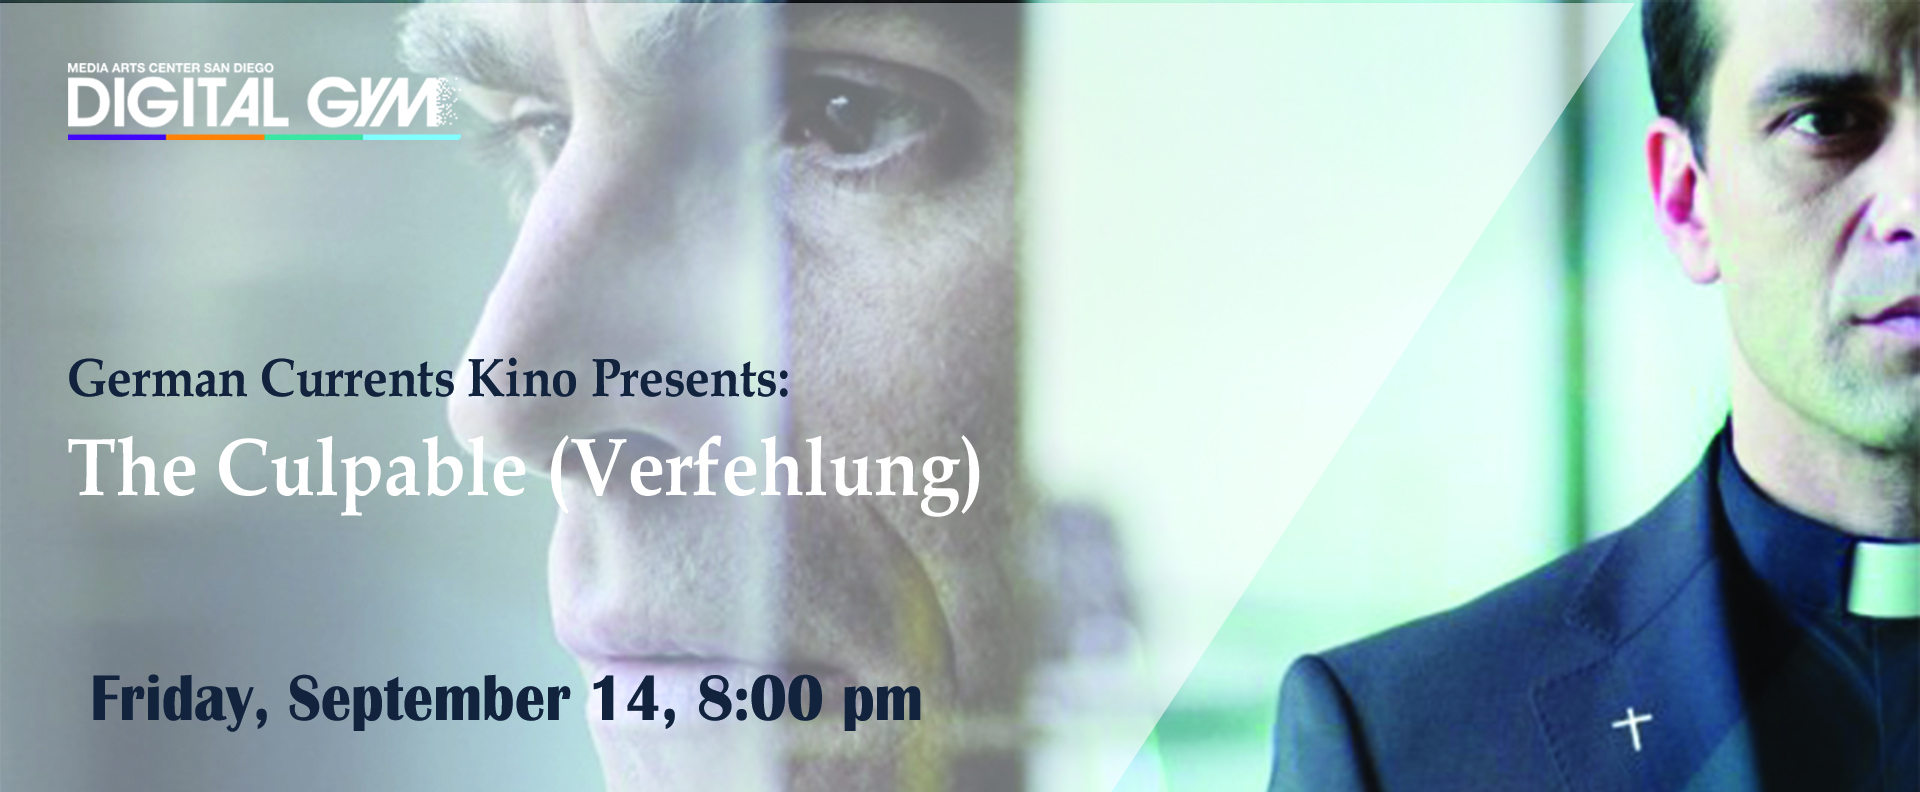 German Currents Kino Presents: The Culpable (Verfehlung) (September 14)